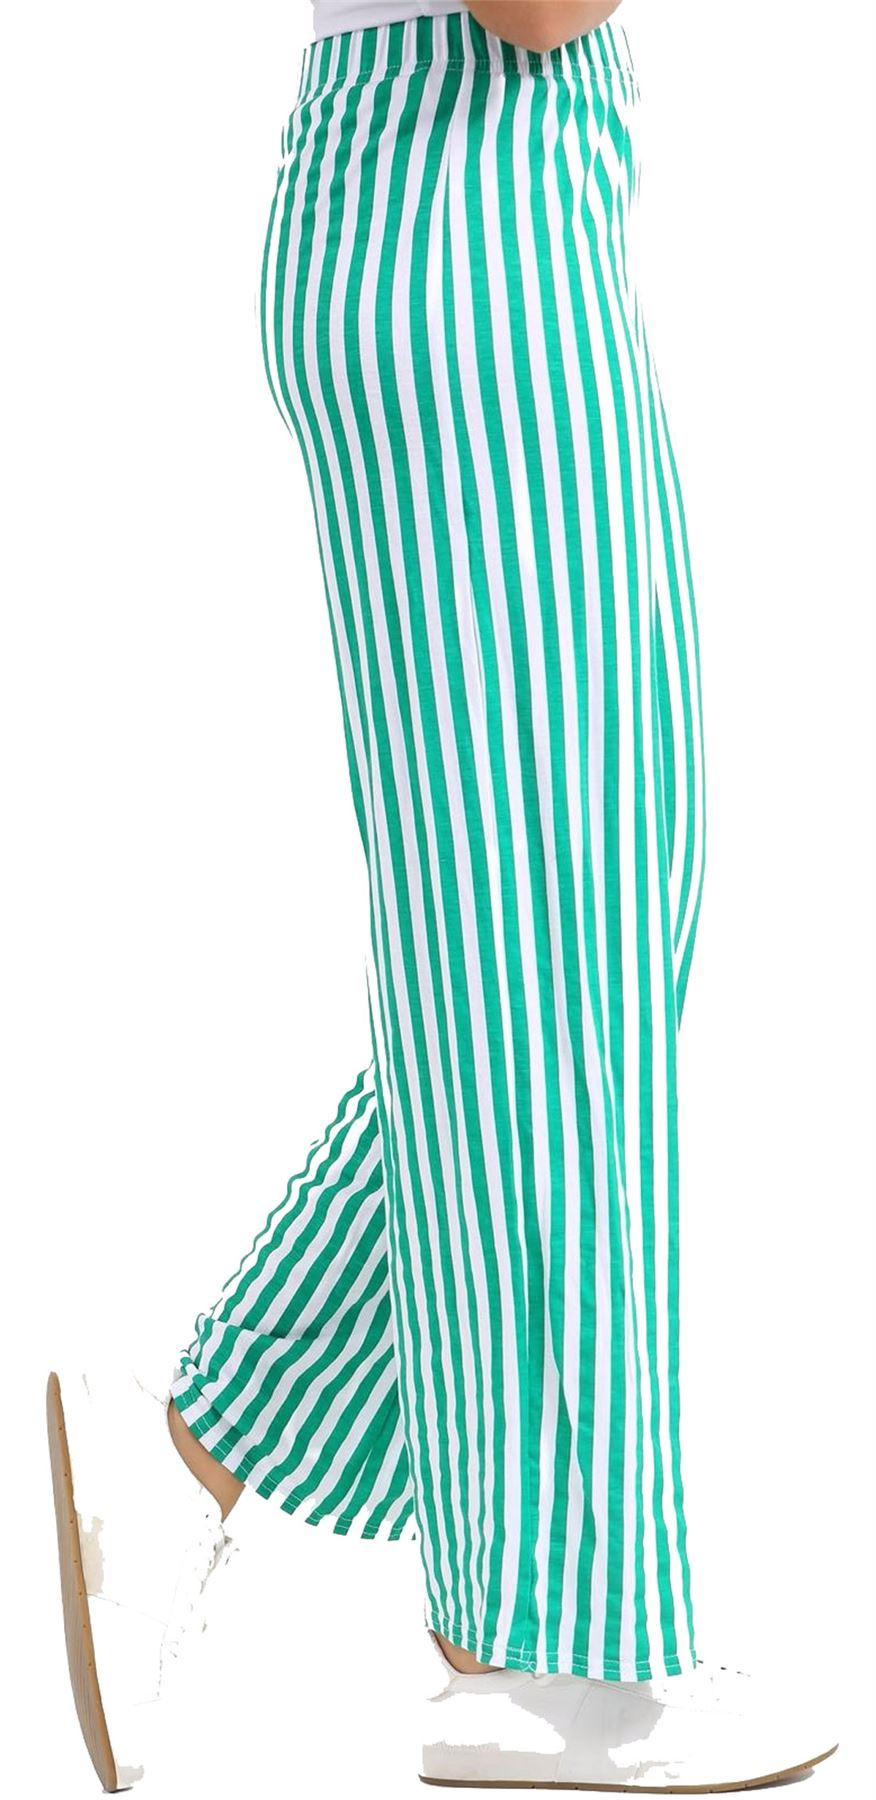 New-Ladies-Floral-Printed-Wide-Leg-Flared-Parallel-Baggy-Trousers-Pants-Palazzo thumbnail 16